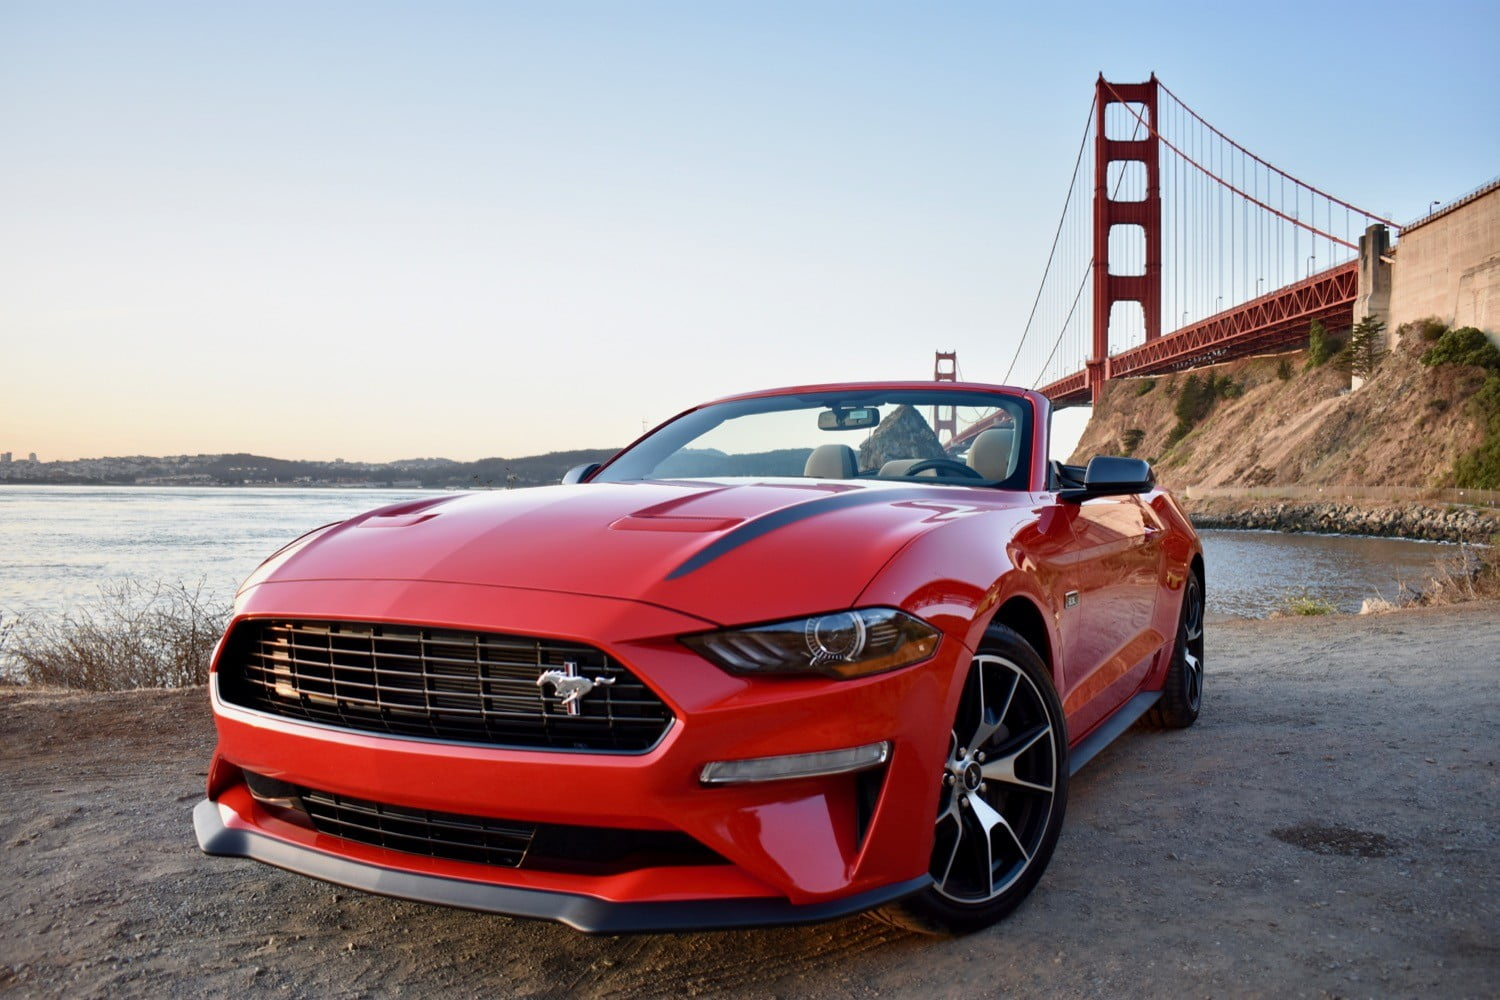 2020 Ford Mustang EcoBoost HPP first drive review: Four is more